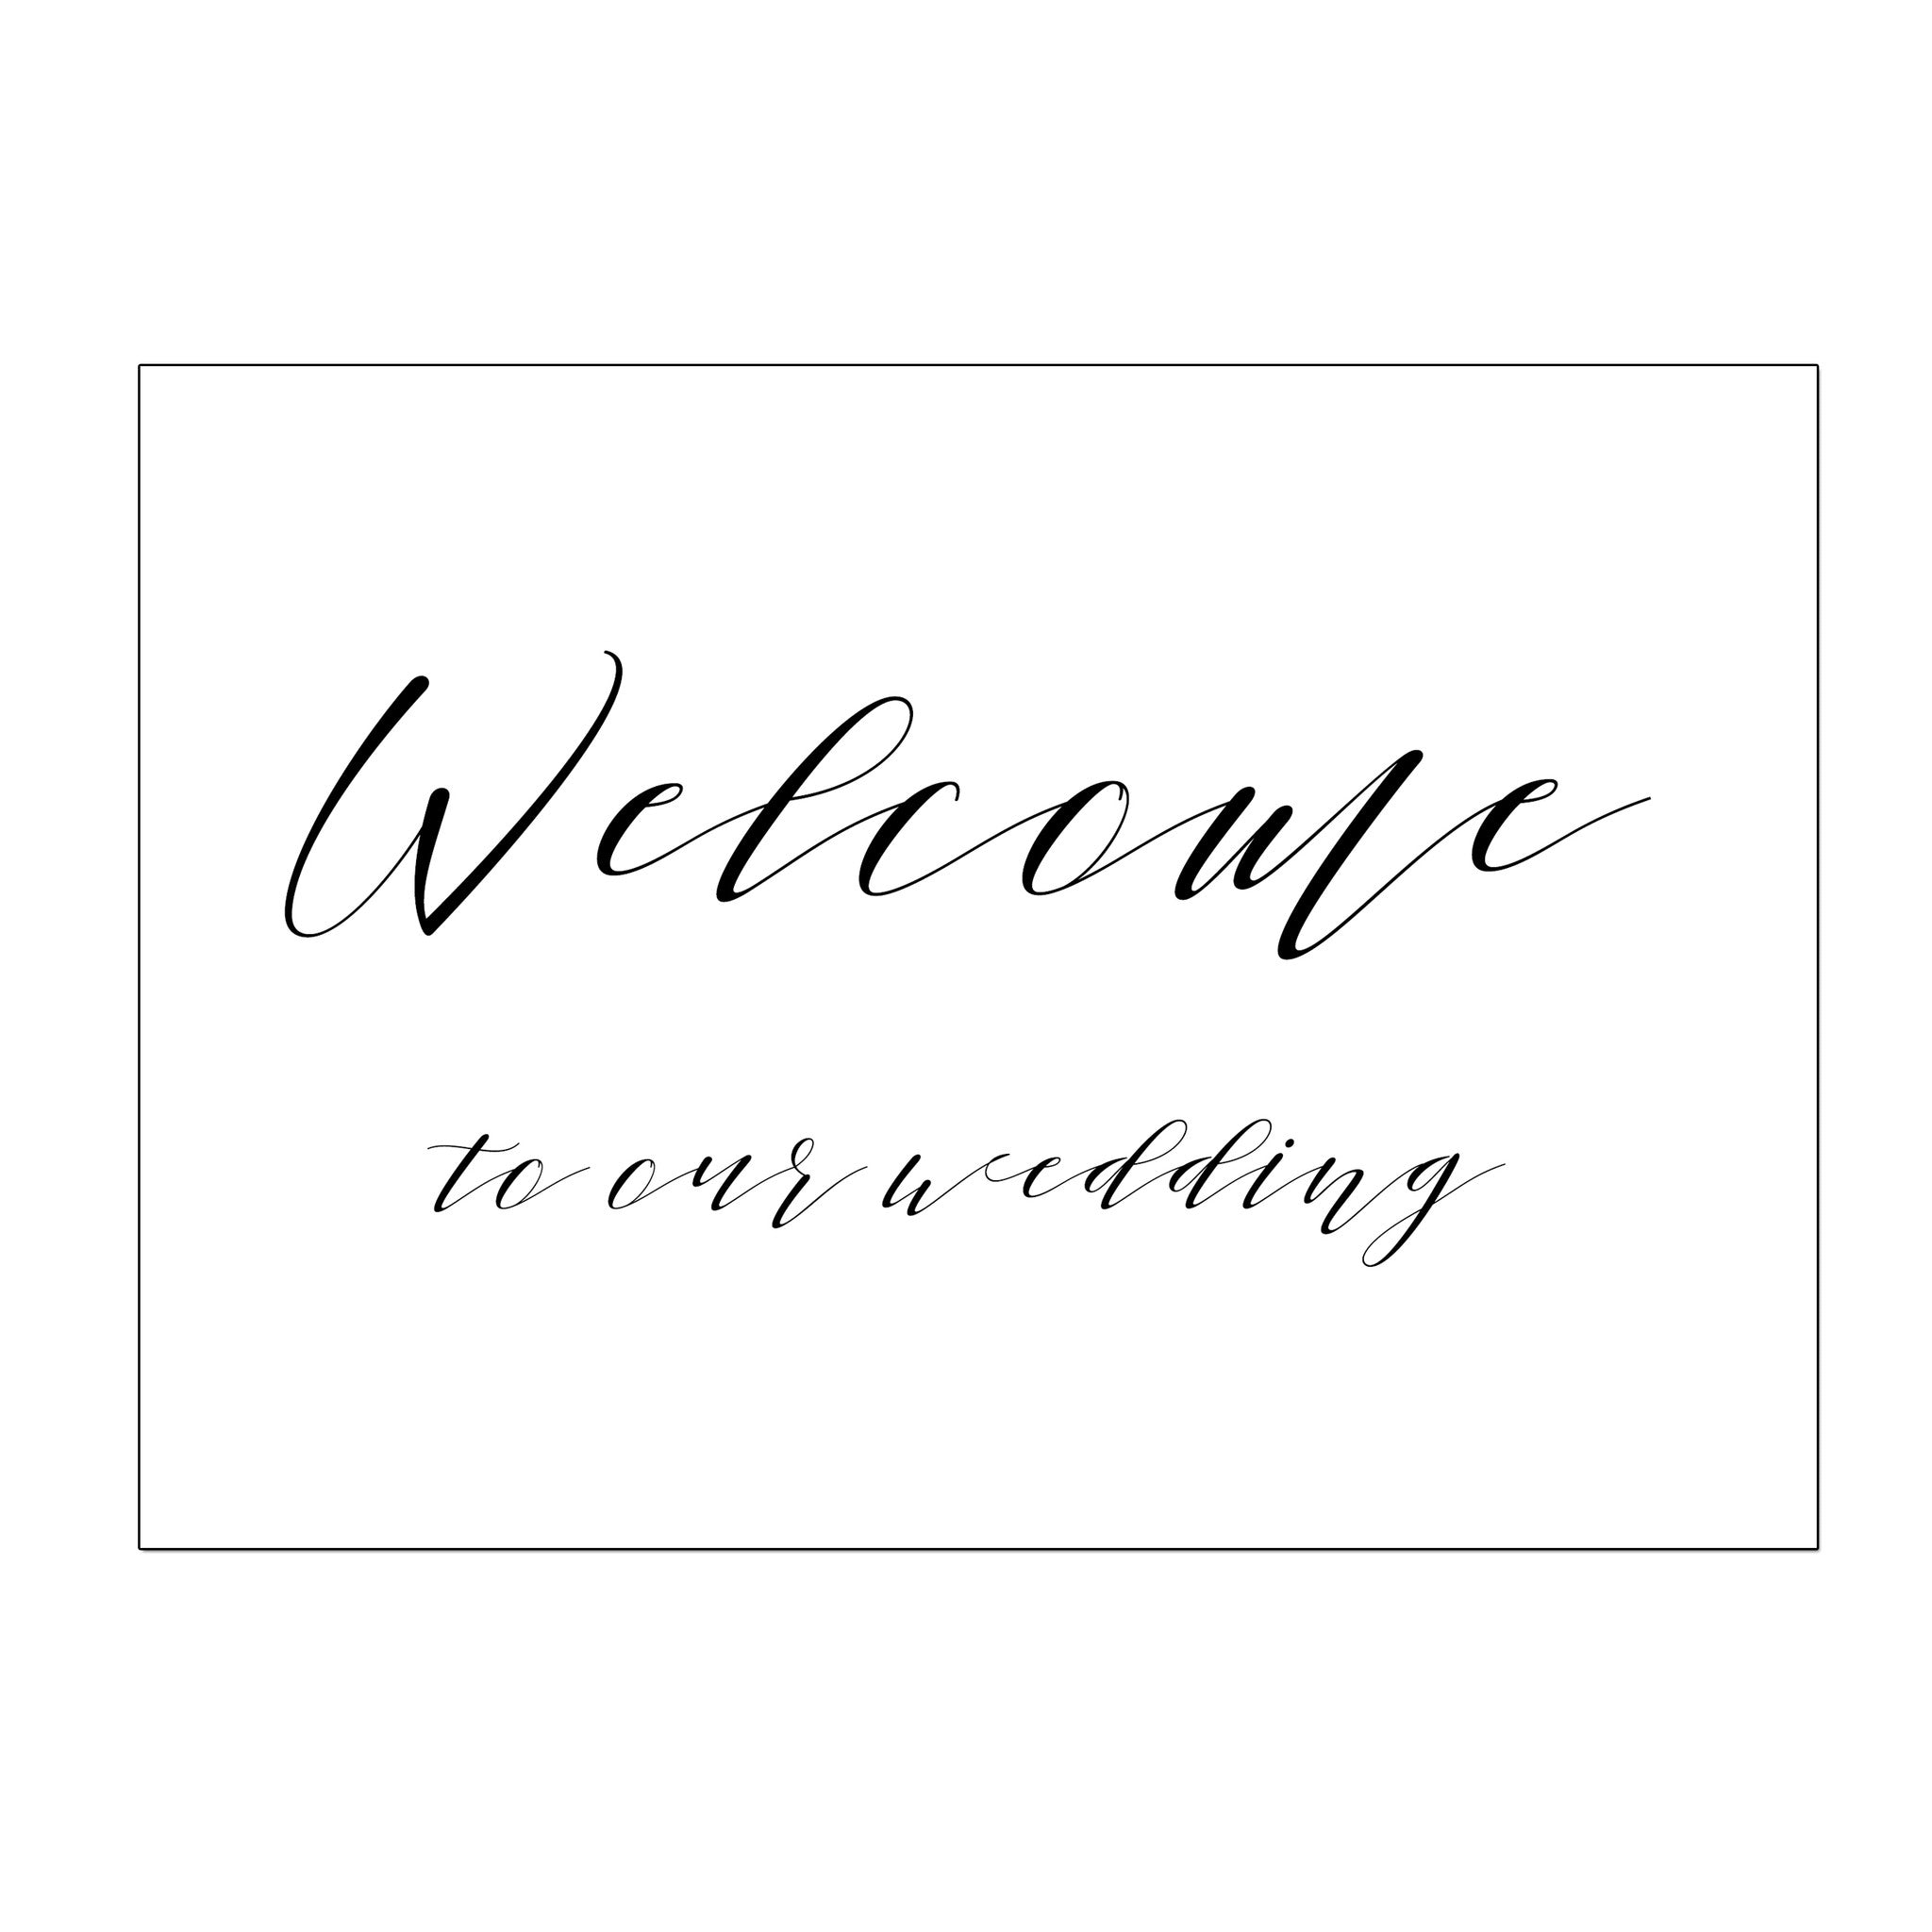 photo about Wedding Sign Printable named Welcome Toward Our Marriage - Electronic Down load / Printable